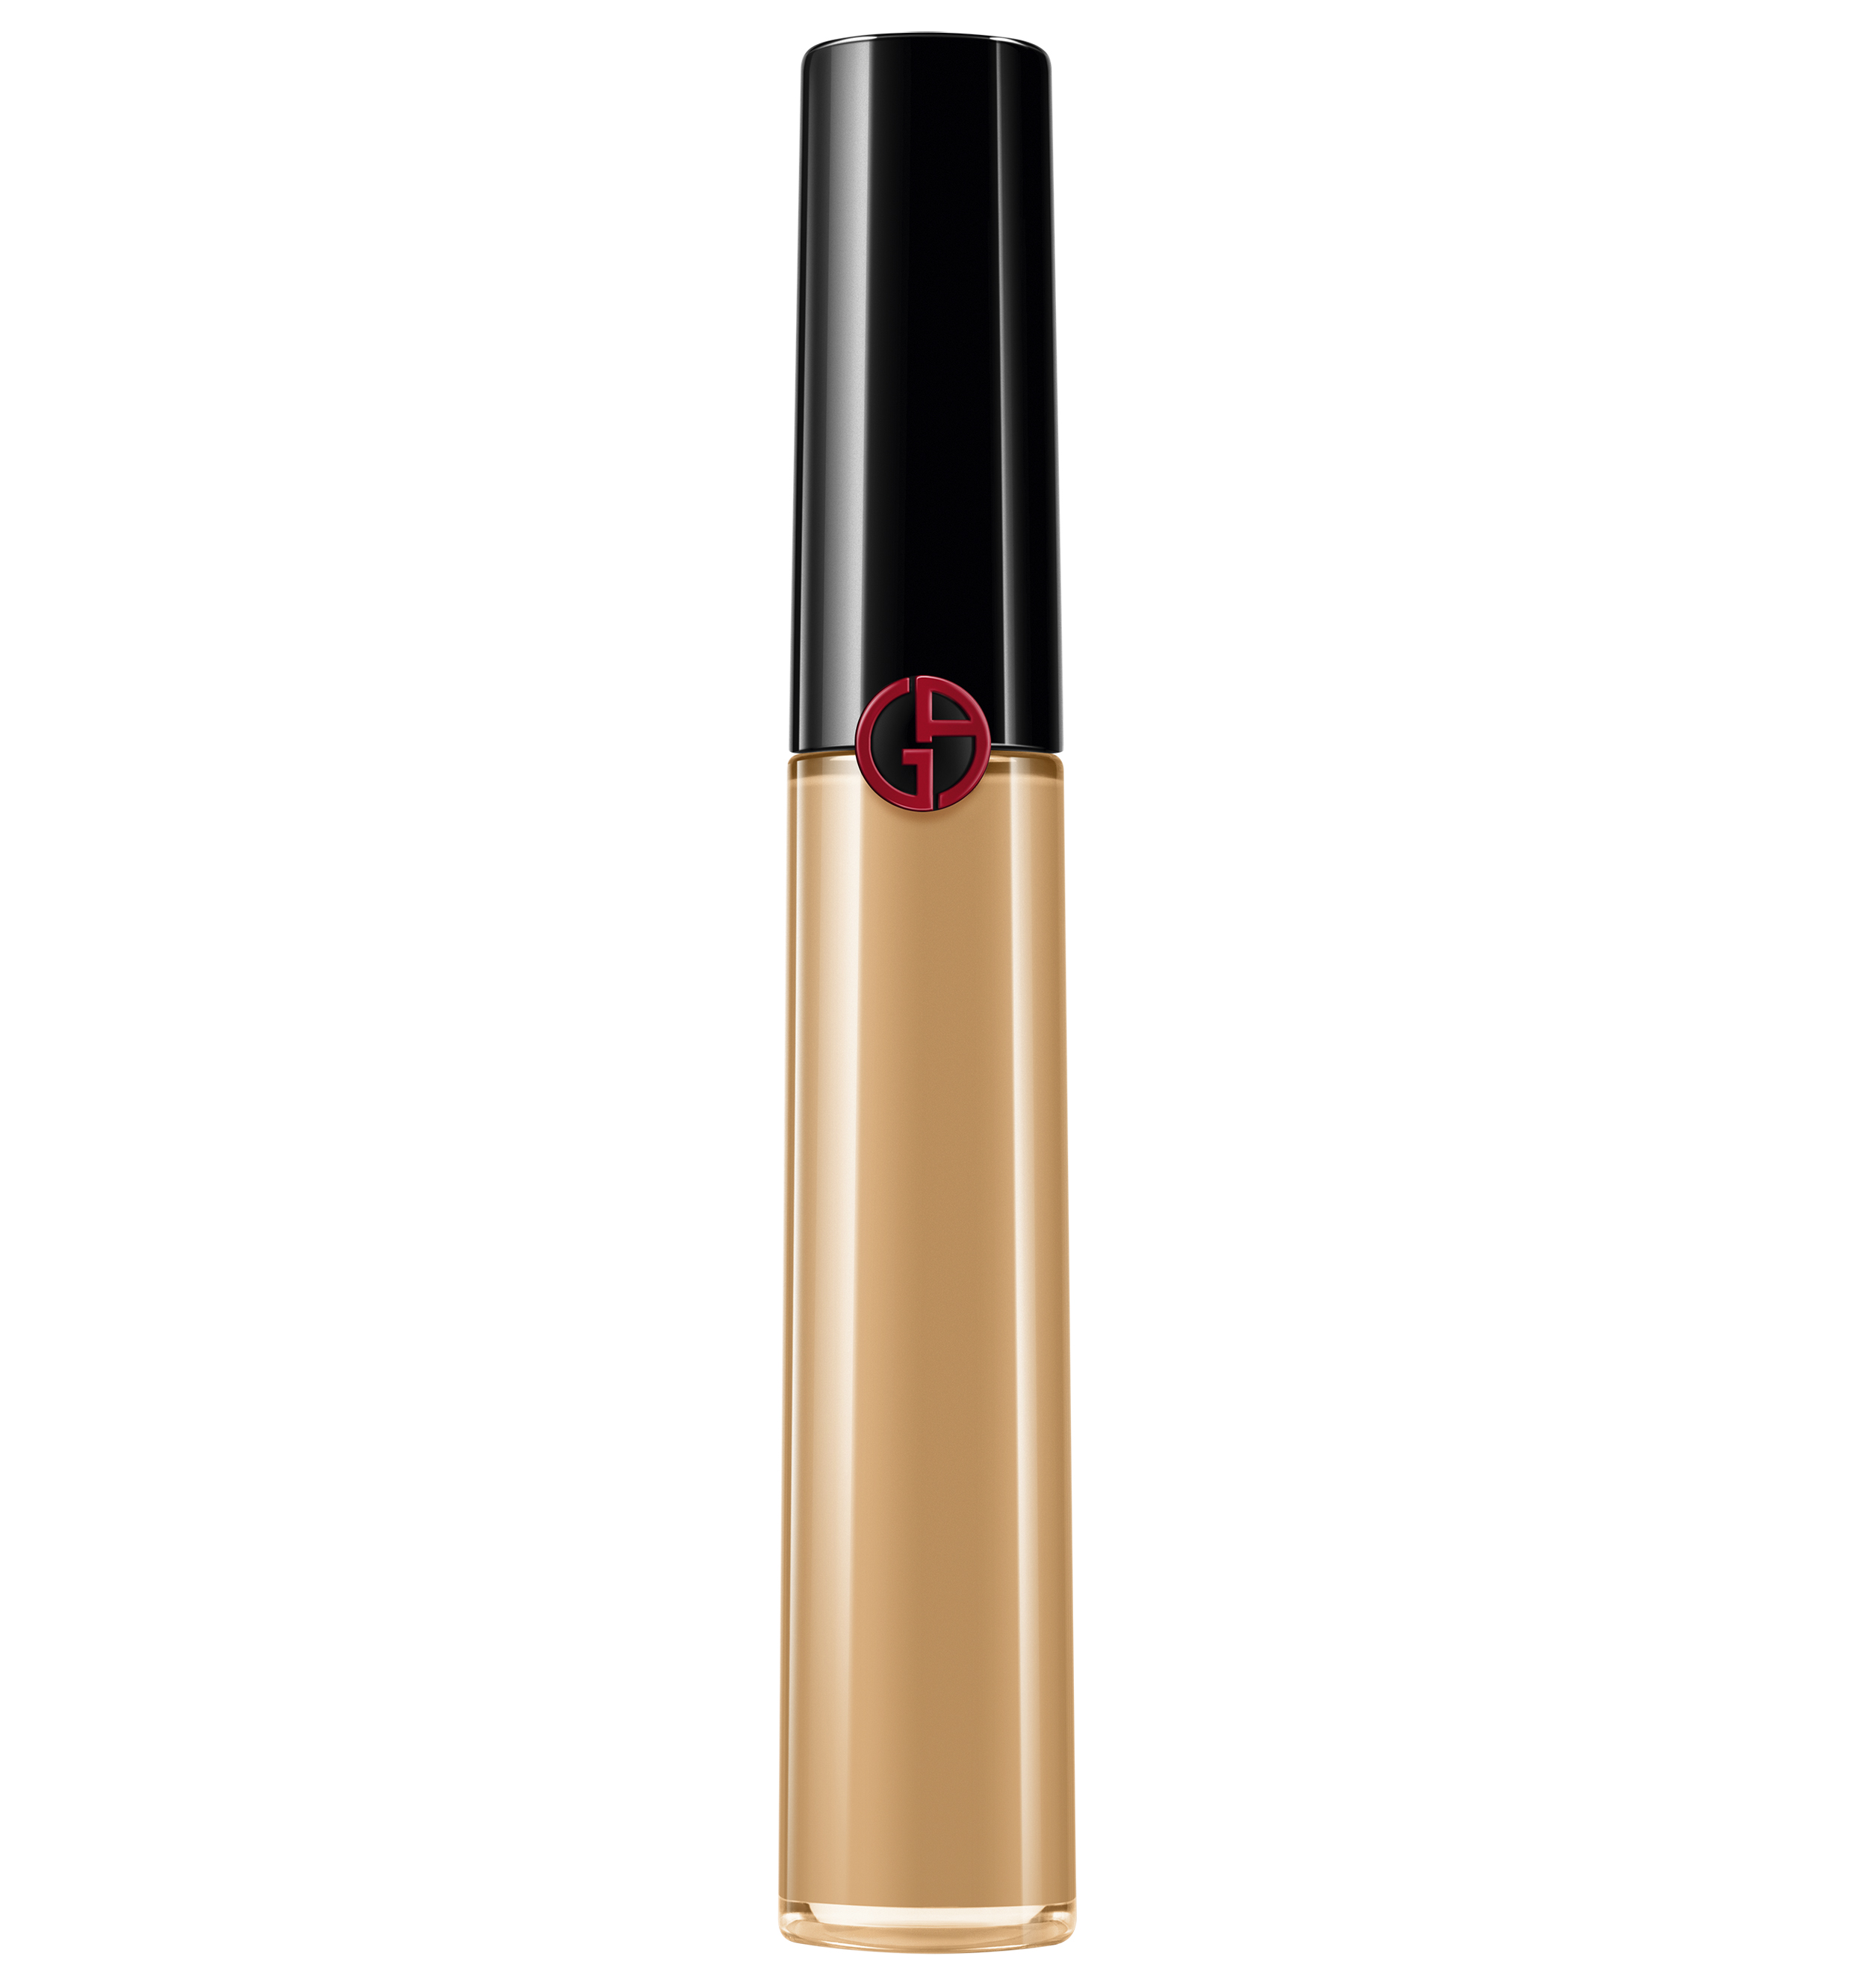 Armani Beauty Power Fabric High Coverage Stretchable Concealer